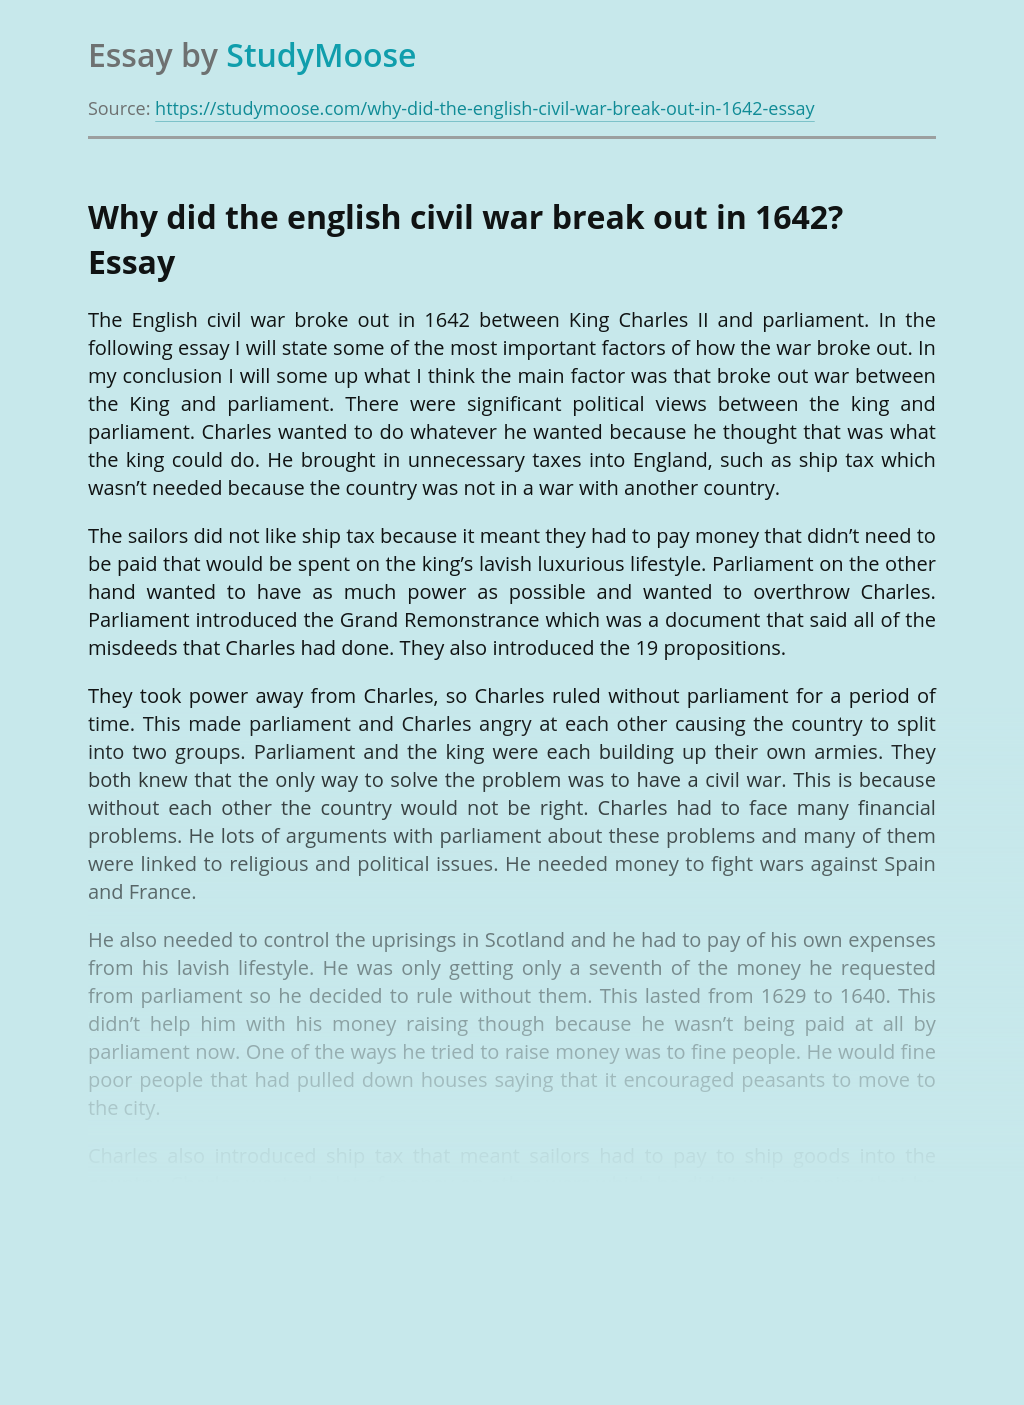 Reasons Why the English Civil War Broke Out in 1642